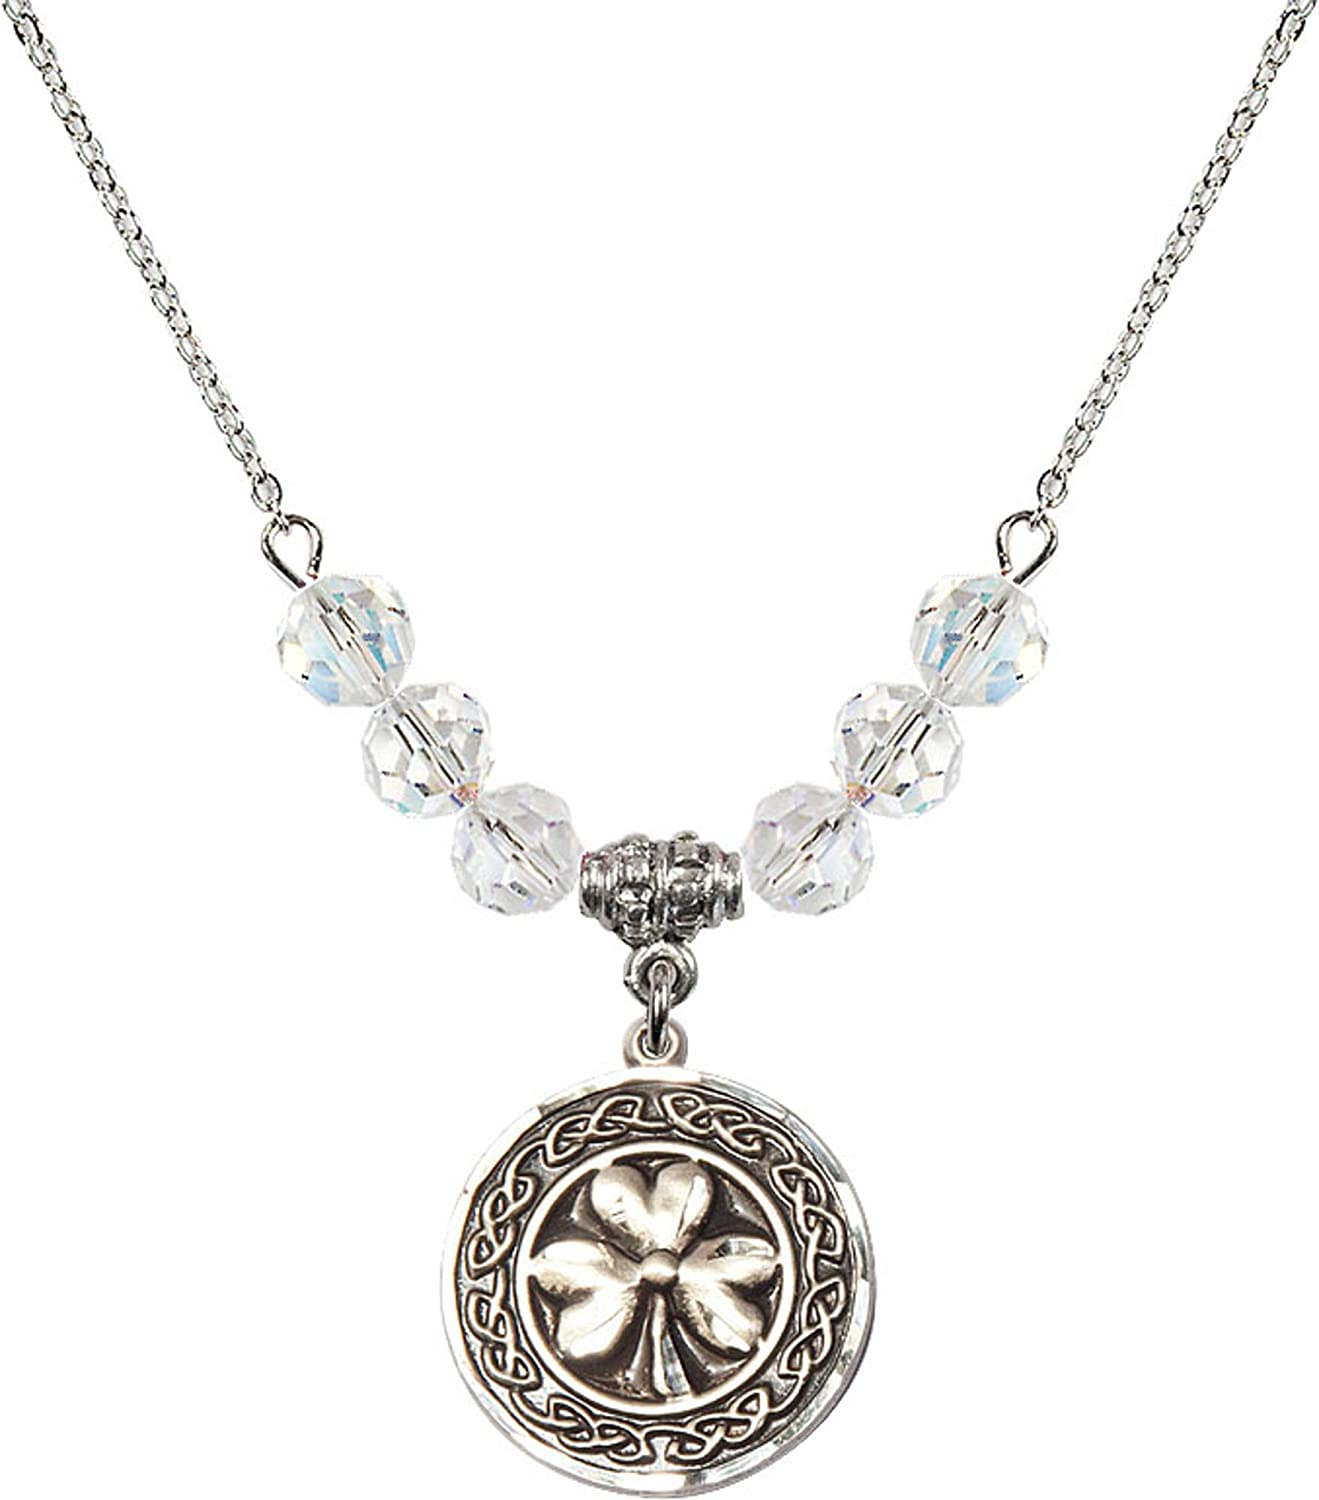 18-Inch Rhodium Plated Necklace with 4mm Amethyst Birthstone Beads and Sterling Silver 5-Way Chalice Charm.